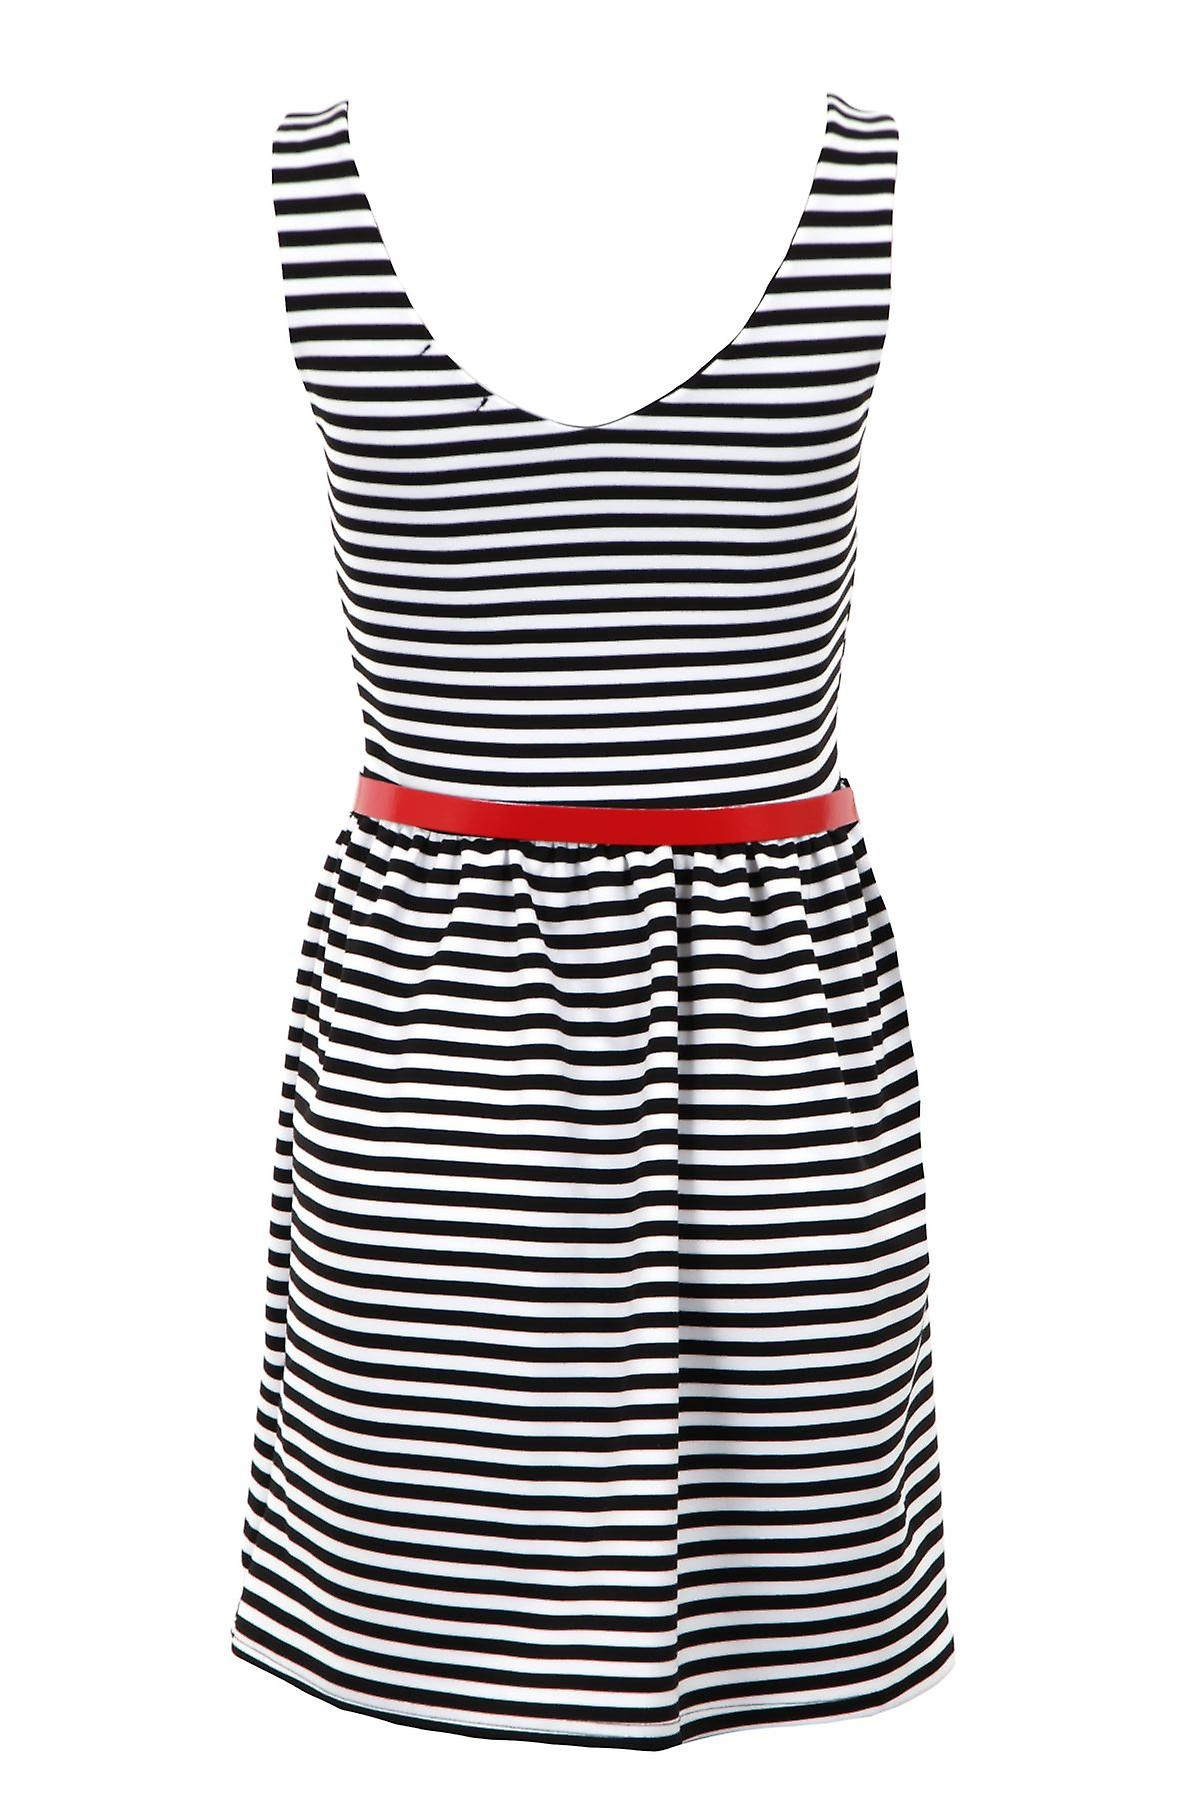 New Ladies Sleeveless Belted Black White V Neck Skater Women's Dress